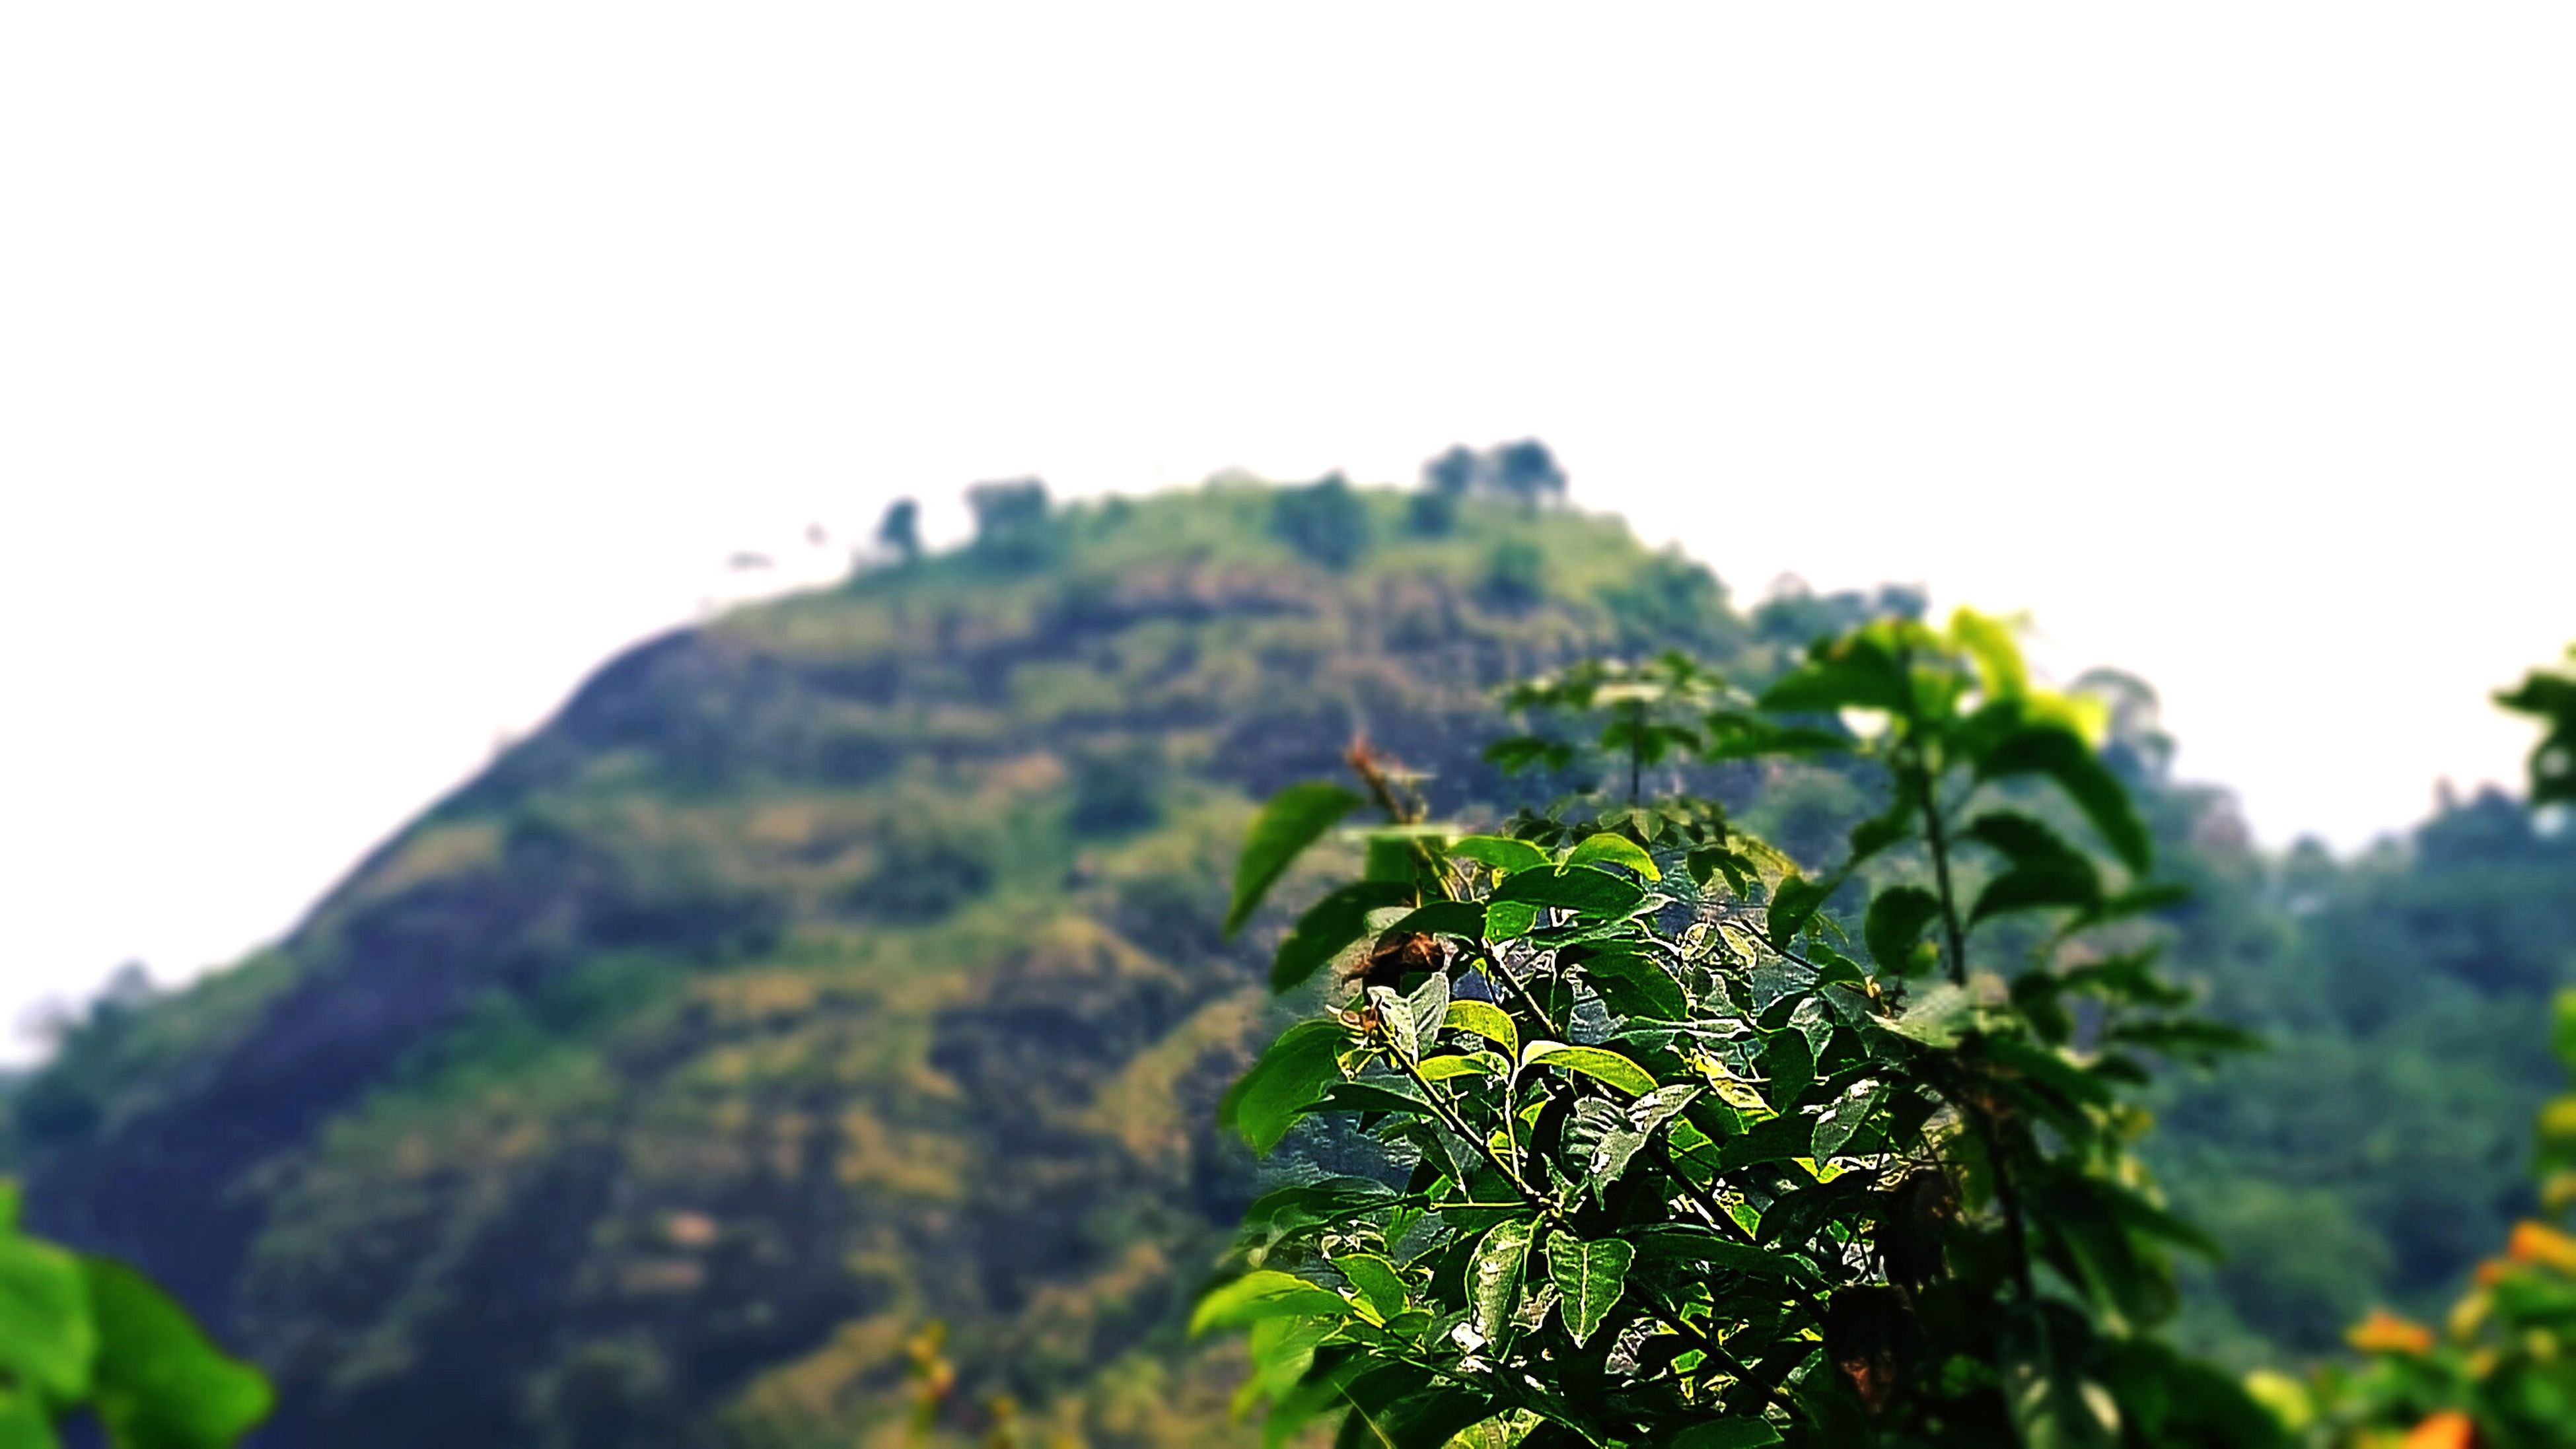 clear sky, growth, tree, leaf, low angle view, nature, plant, green color, beauty in nature, focus on foreground, copy space, close-up, mountain, tranquility, day, growing, outdoors, selective focus, freshness, sky